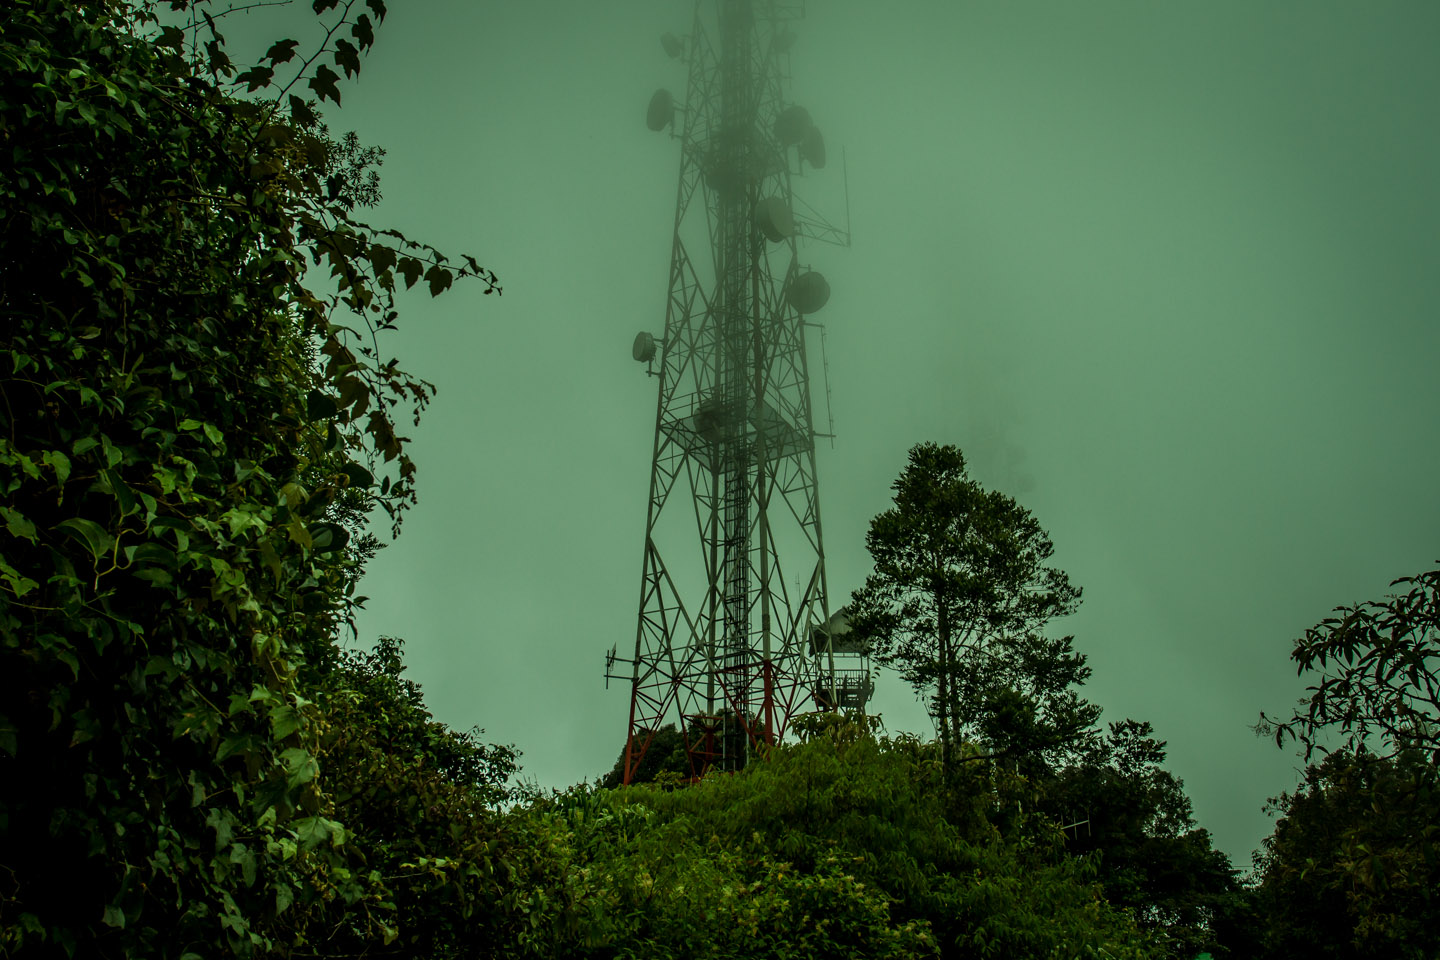 Satellite dishes and communication tower at Mossy Forest Mount Gunung Batu Brinchang